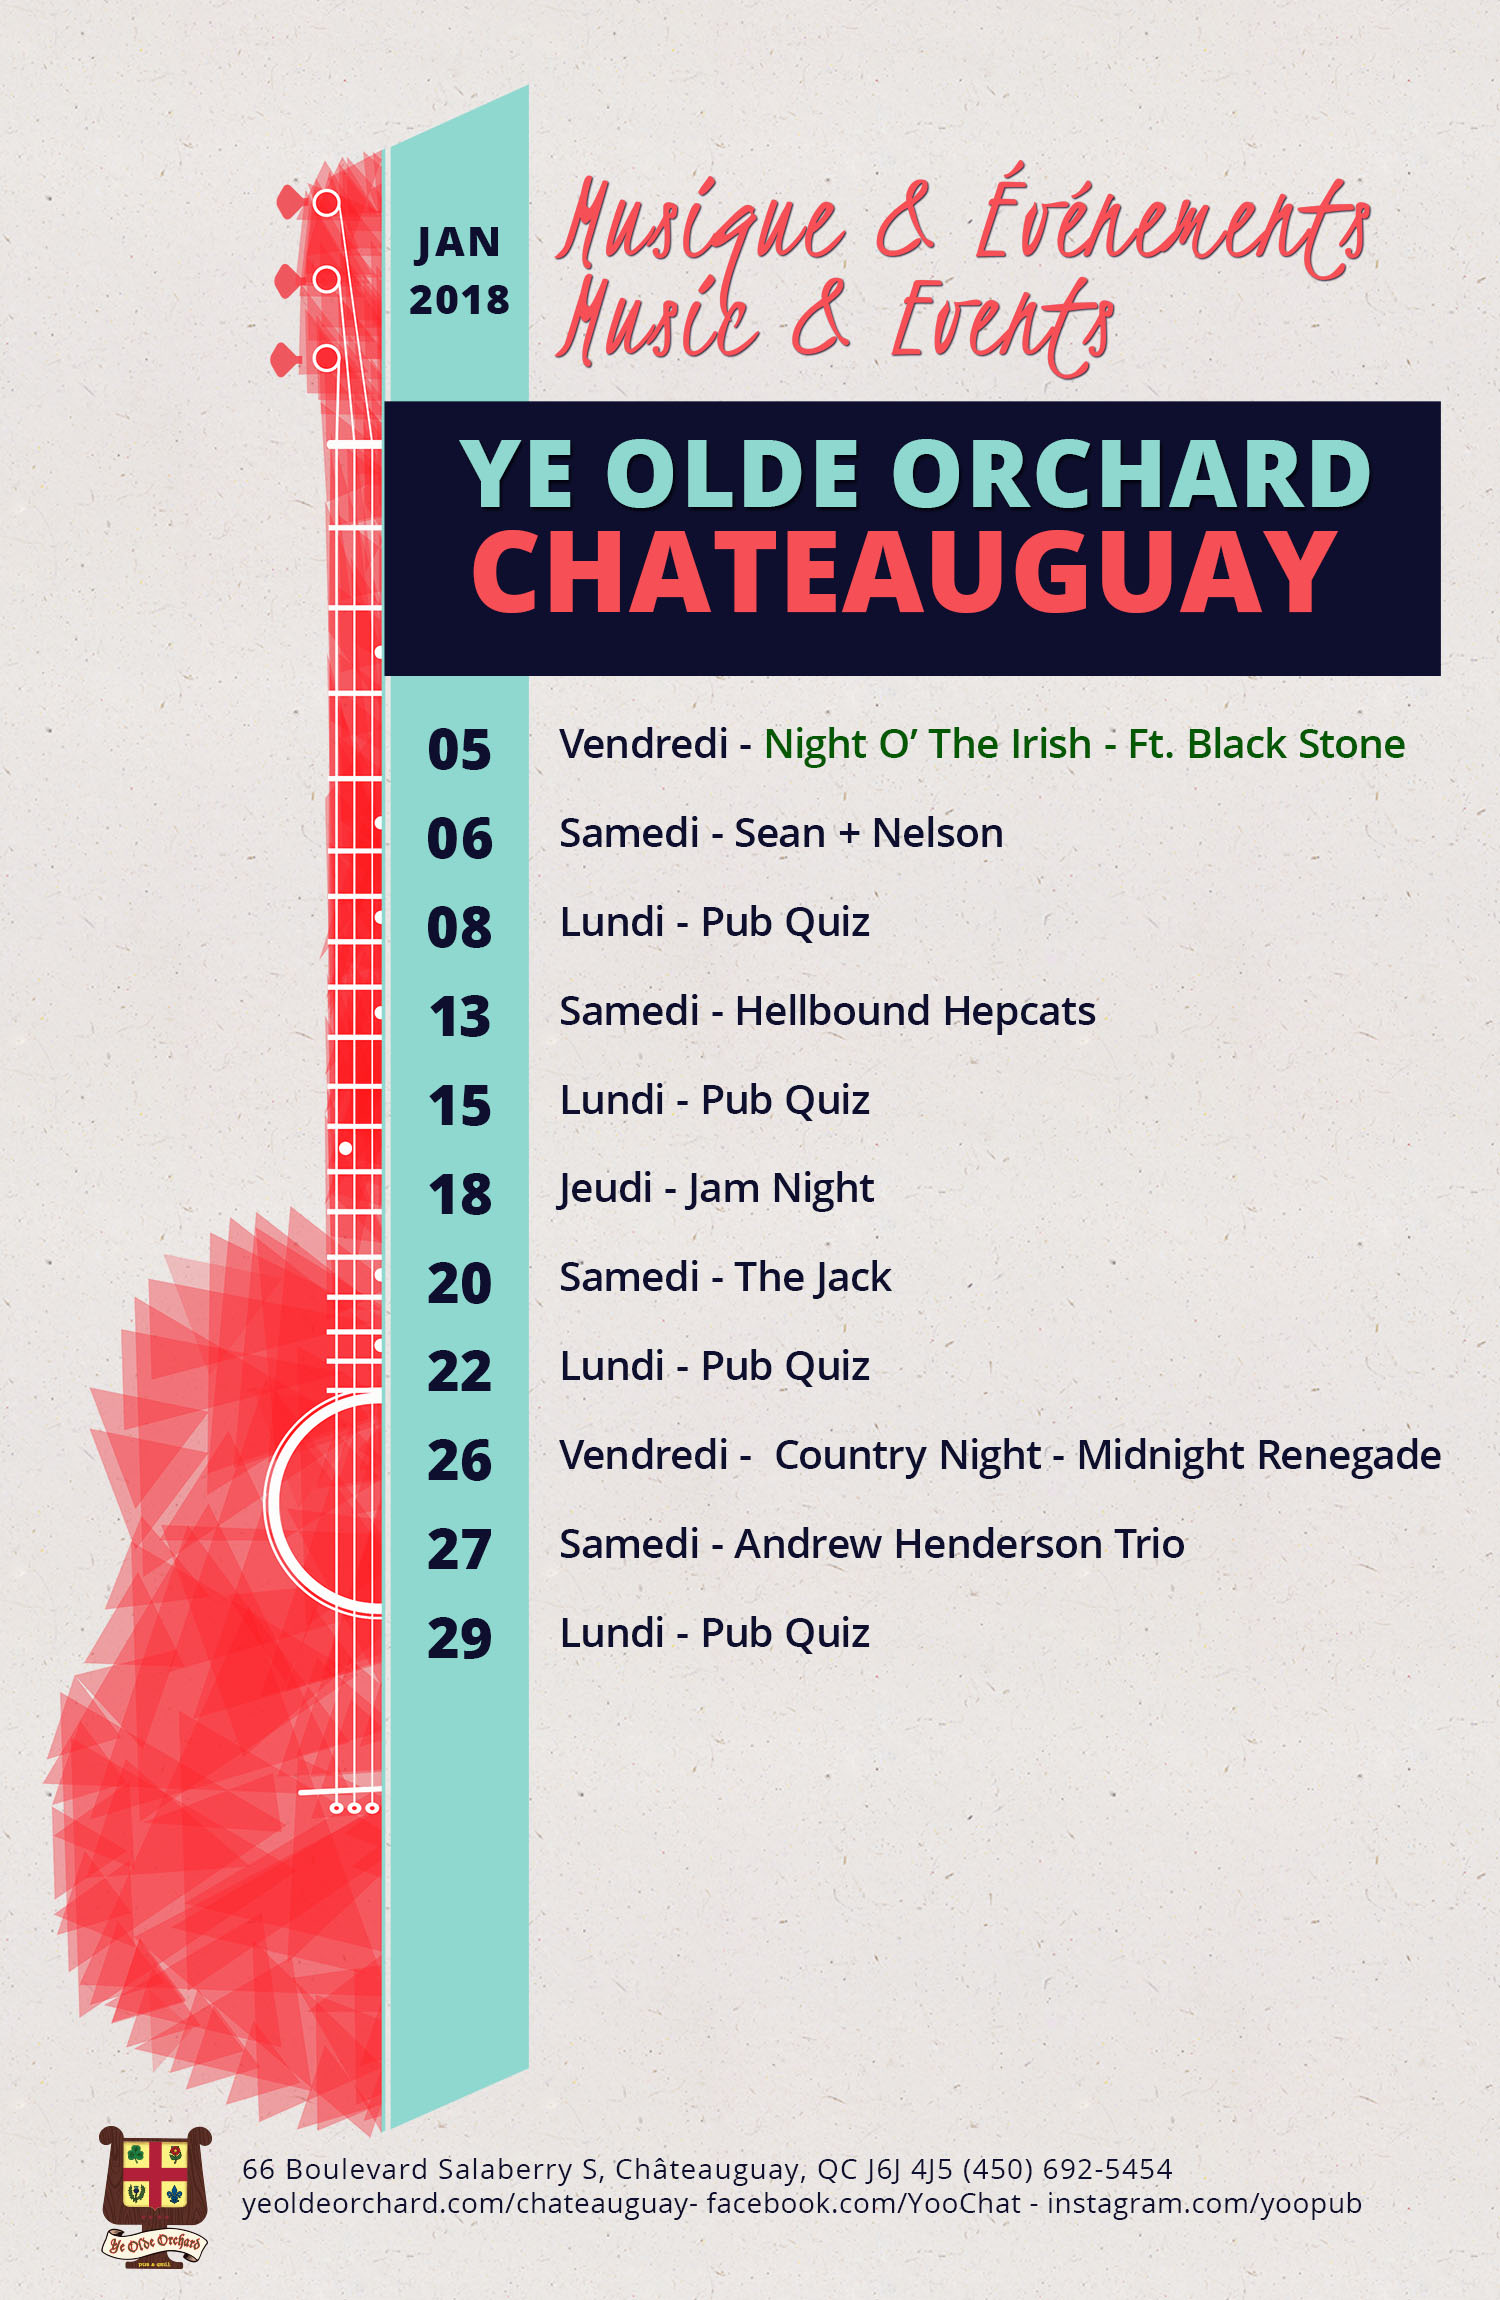 ye-olde-orchard-pub-music-and-events-calendar-Chateauguay-WEB-JAN